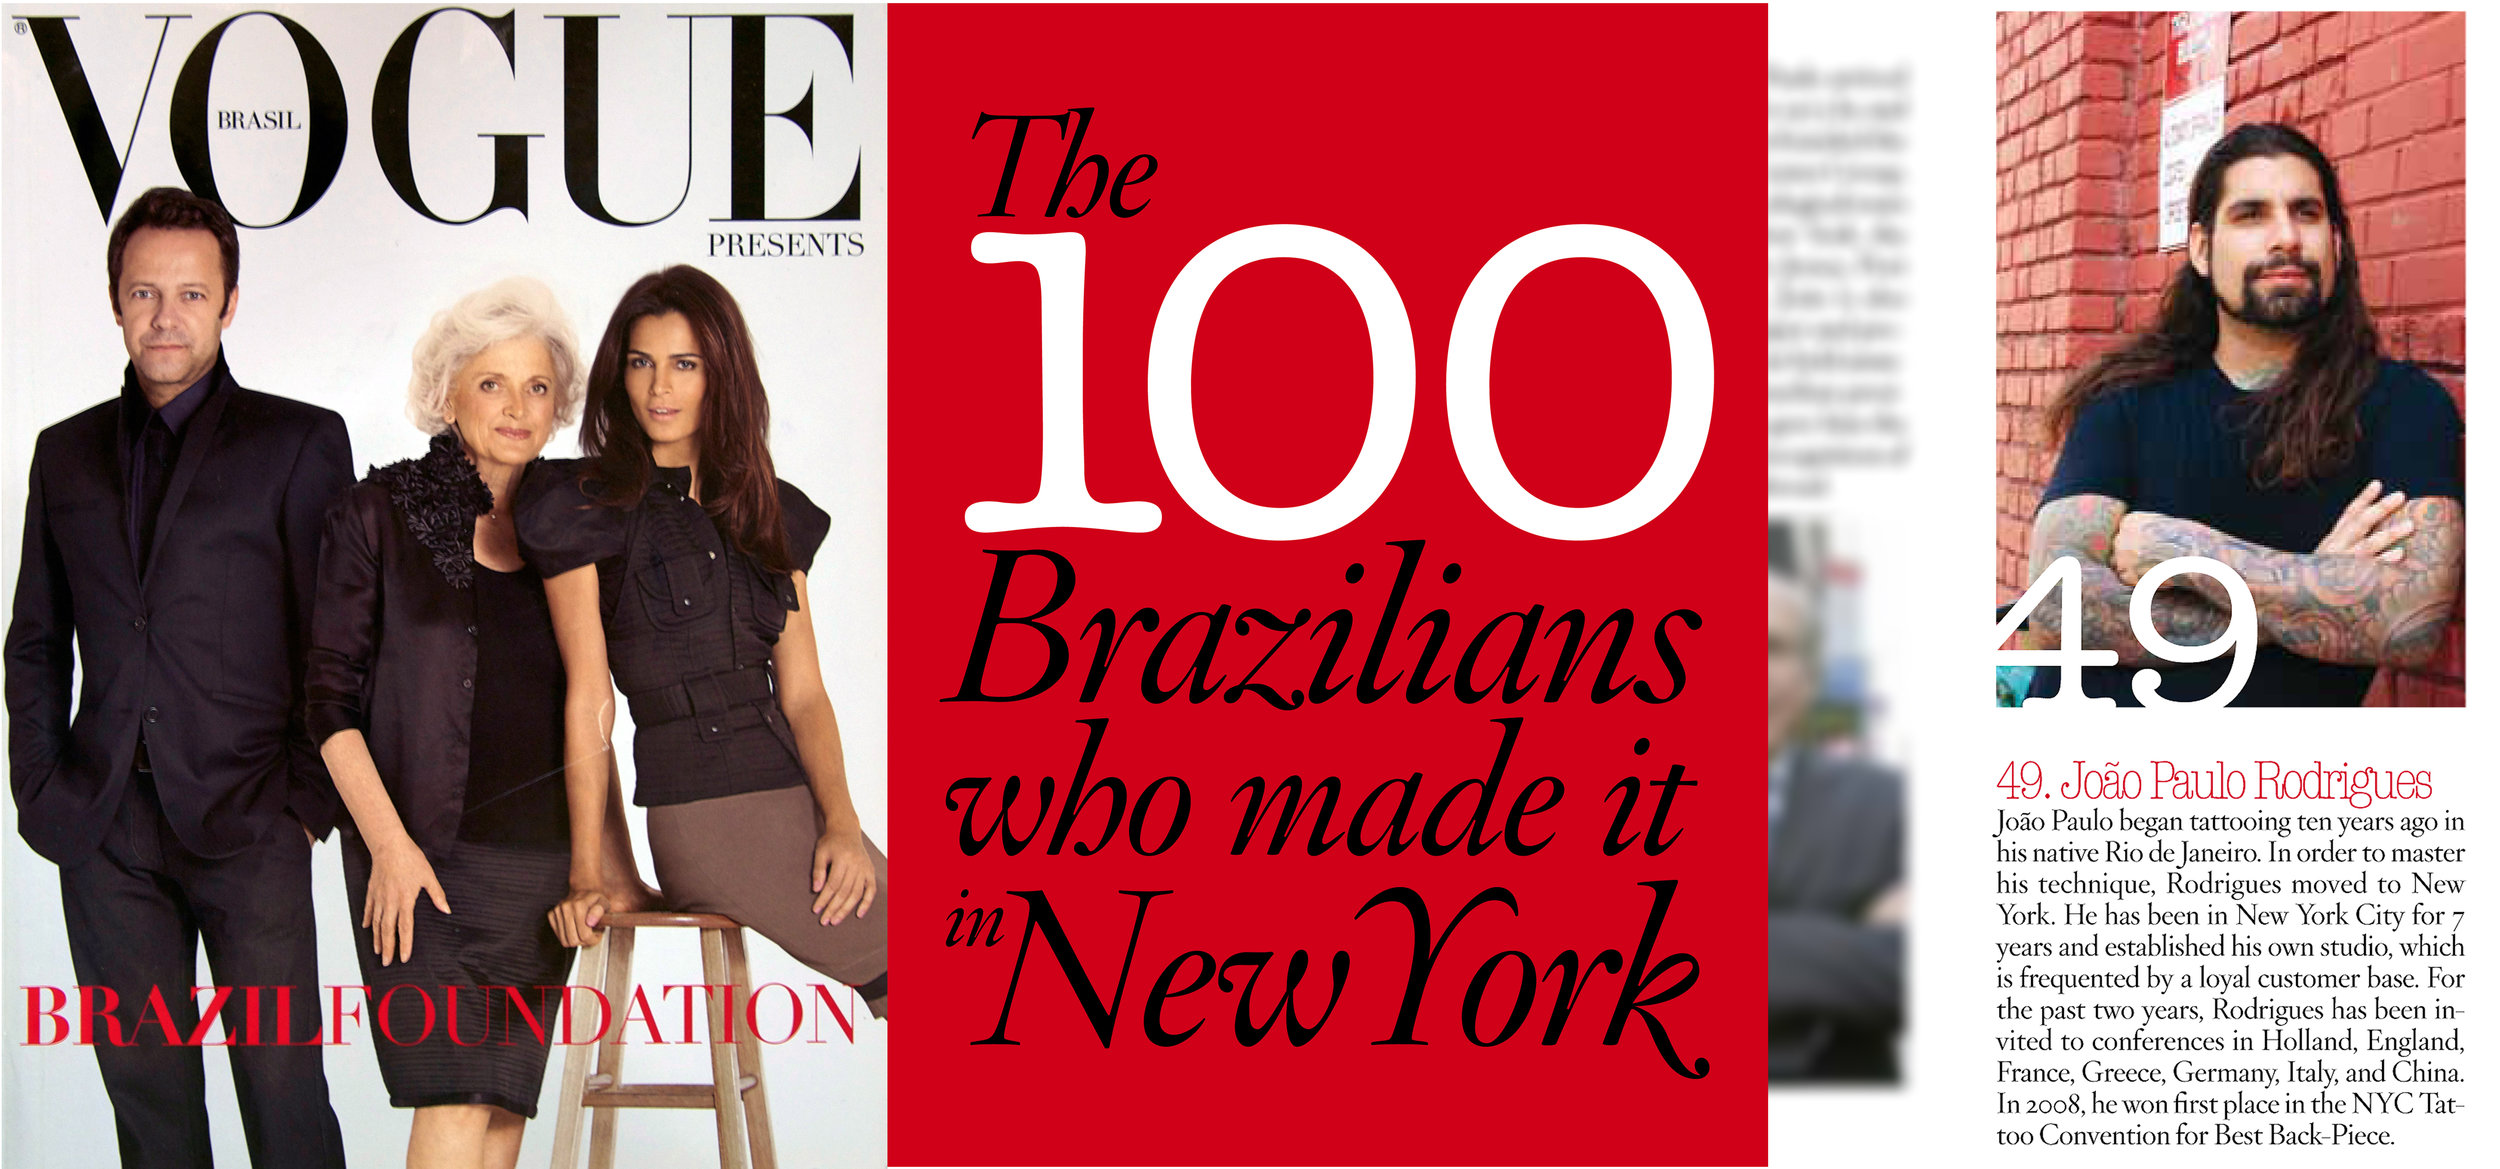 2010 - JP Rodrigues was voted by Vogue Magazine.